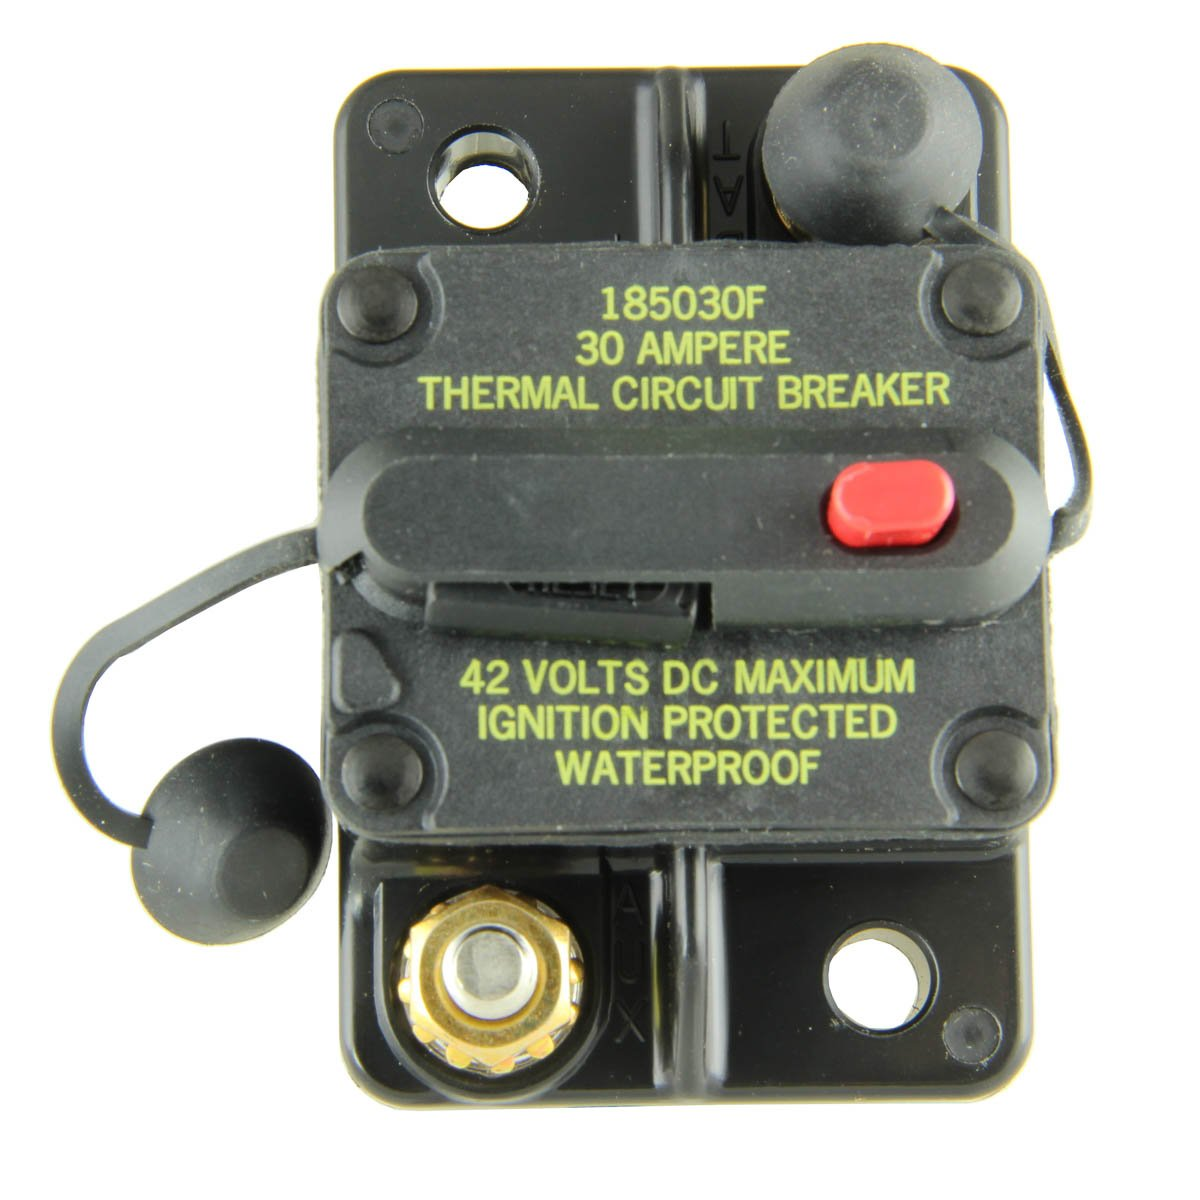 Bussmann Cb185 30 Surface Mount Circuit Breakers Amps 1 Per Fuse Breaker How Fuses Work Pack Thermal